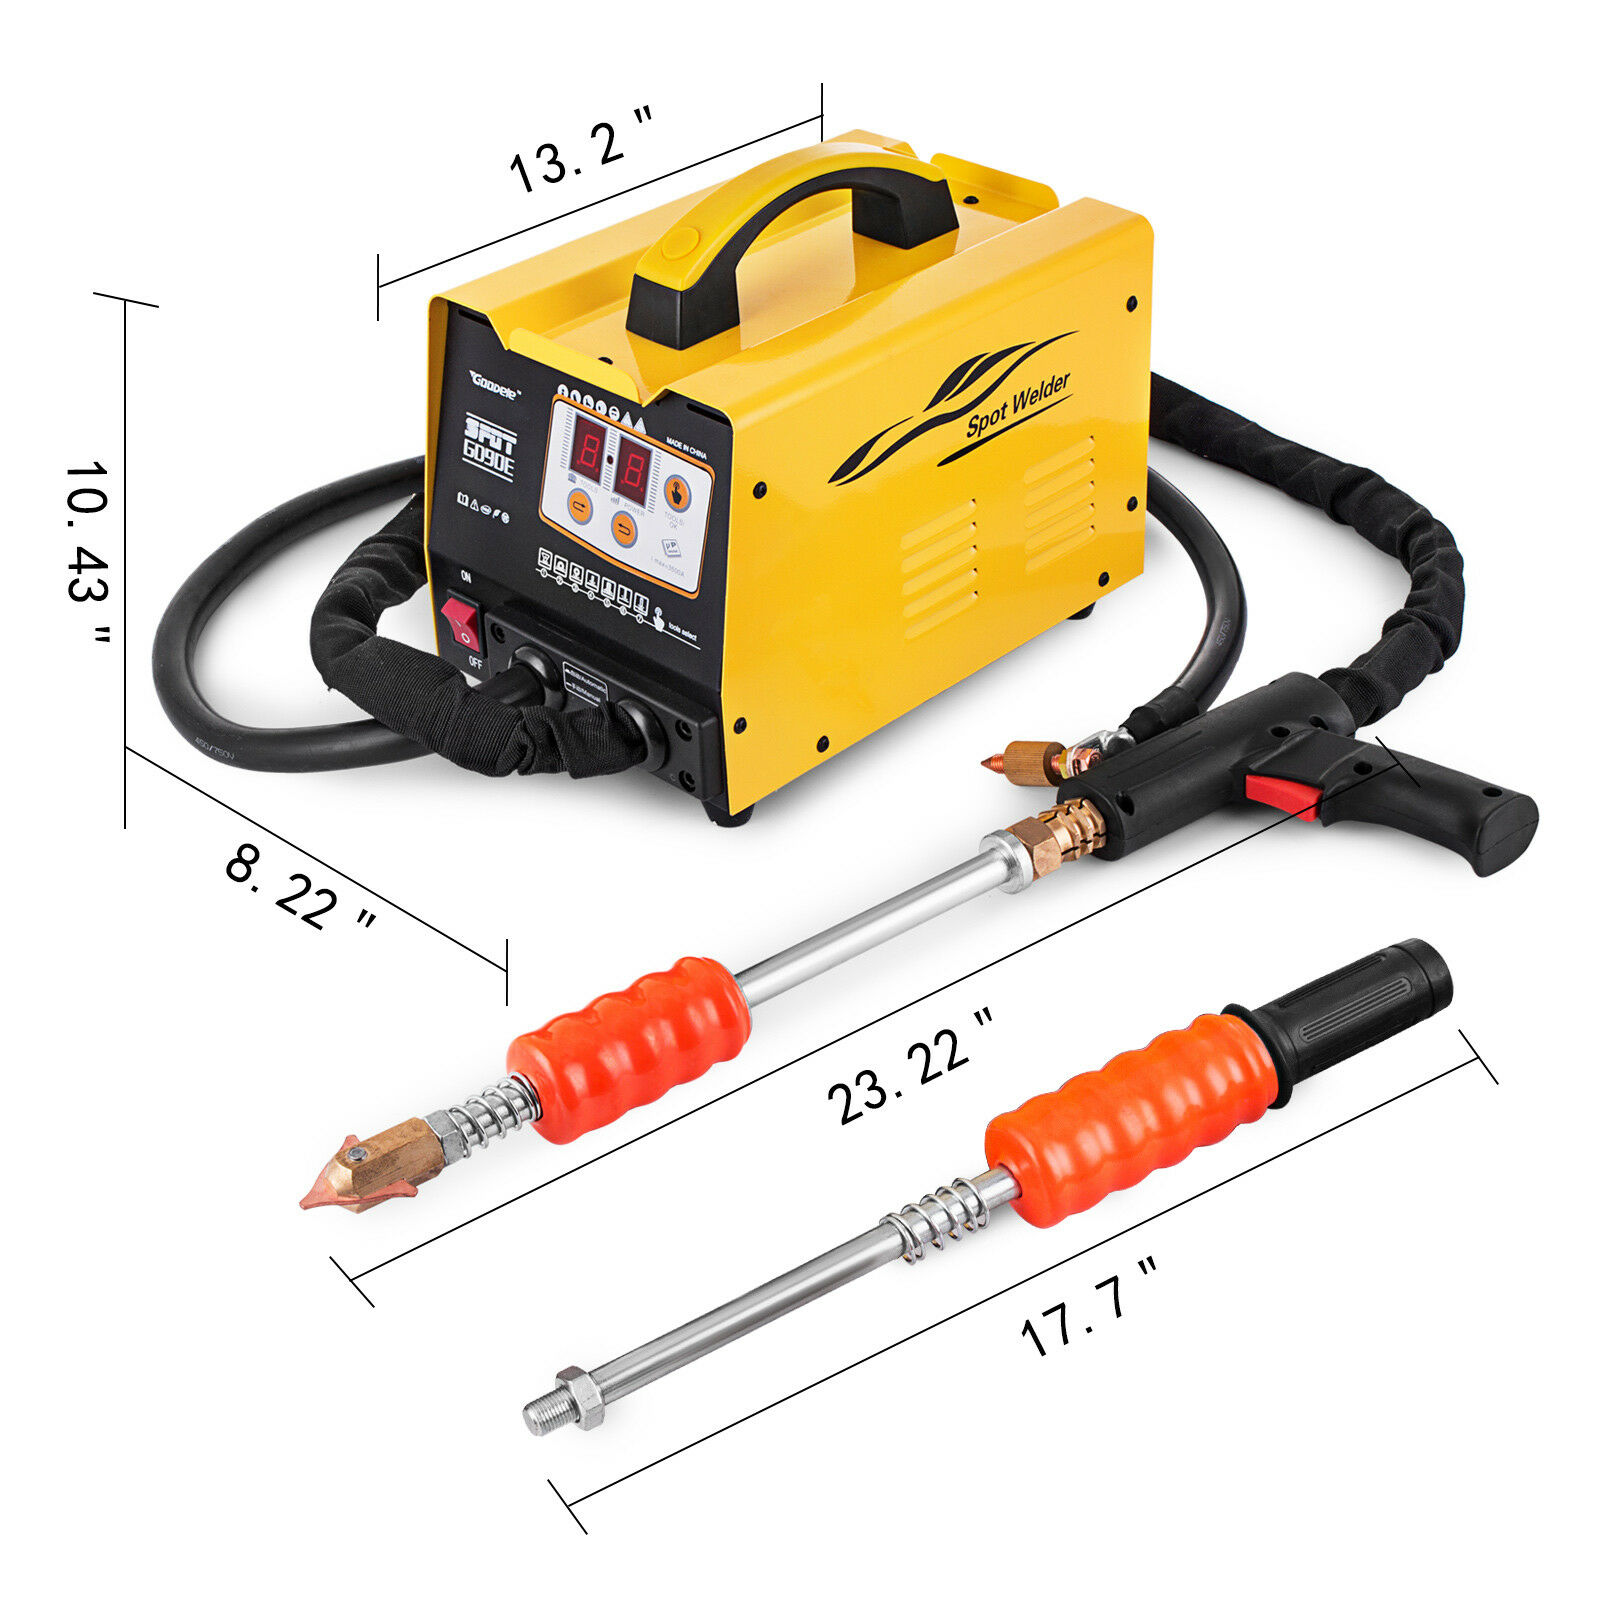 Free Shipping For RU G90E Vehicle Panel Spot Puller Bonnet Door Repair Dent Spotter With Tool